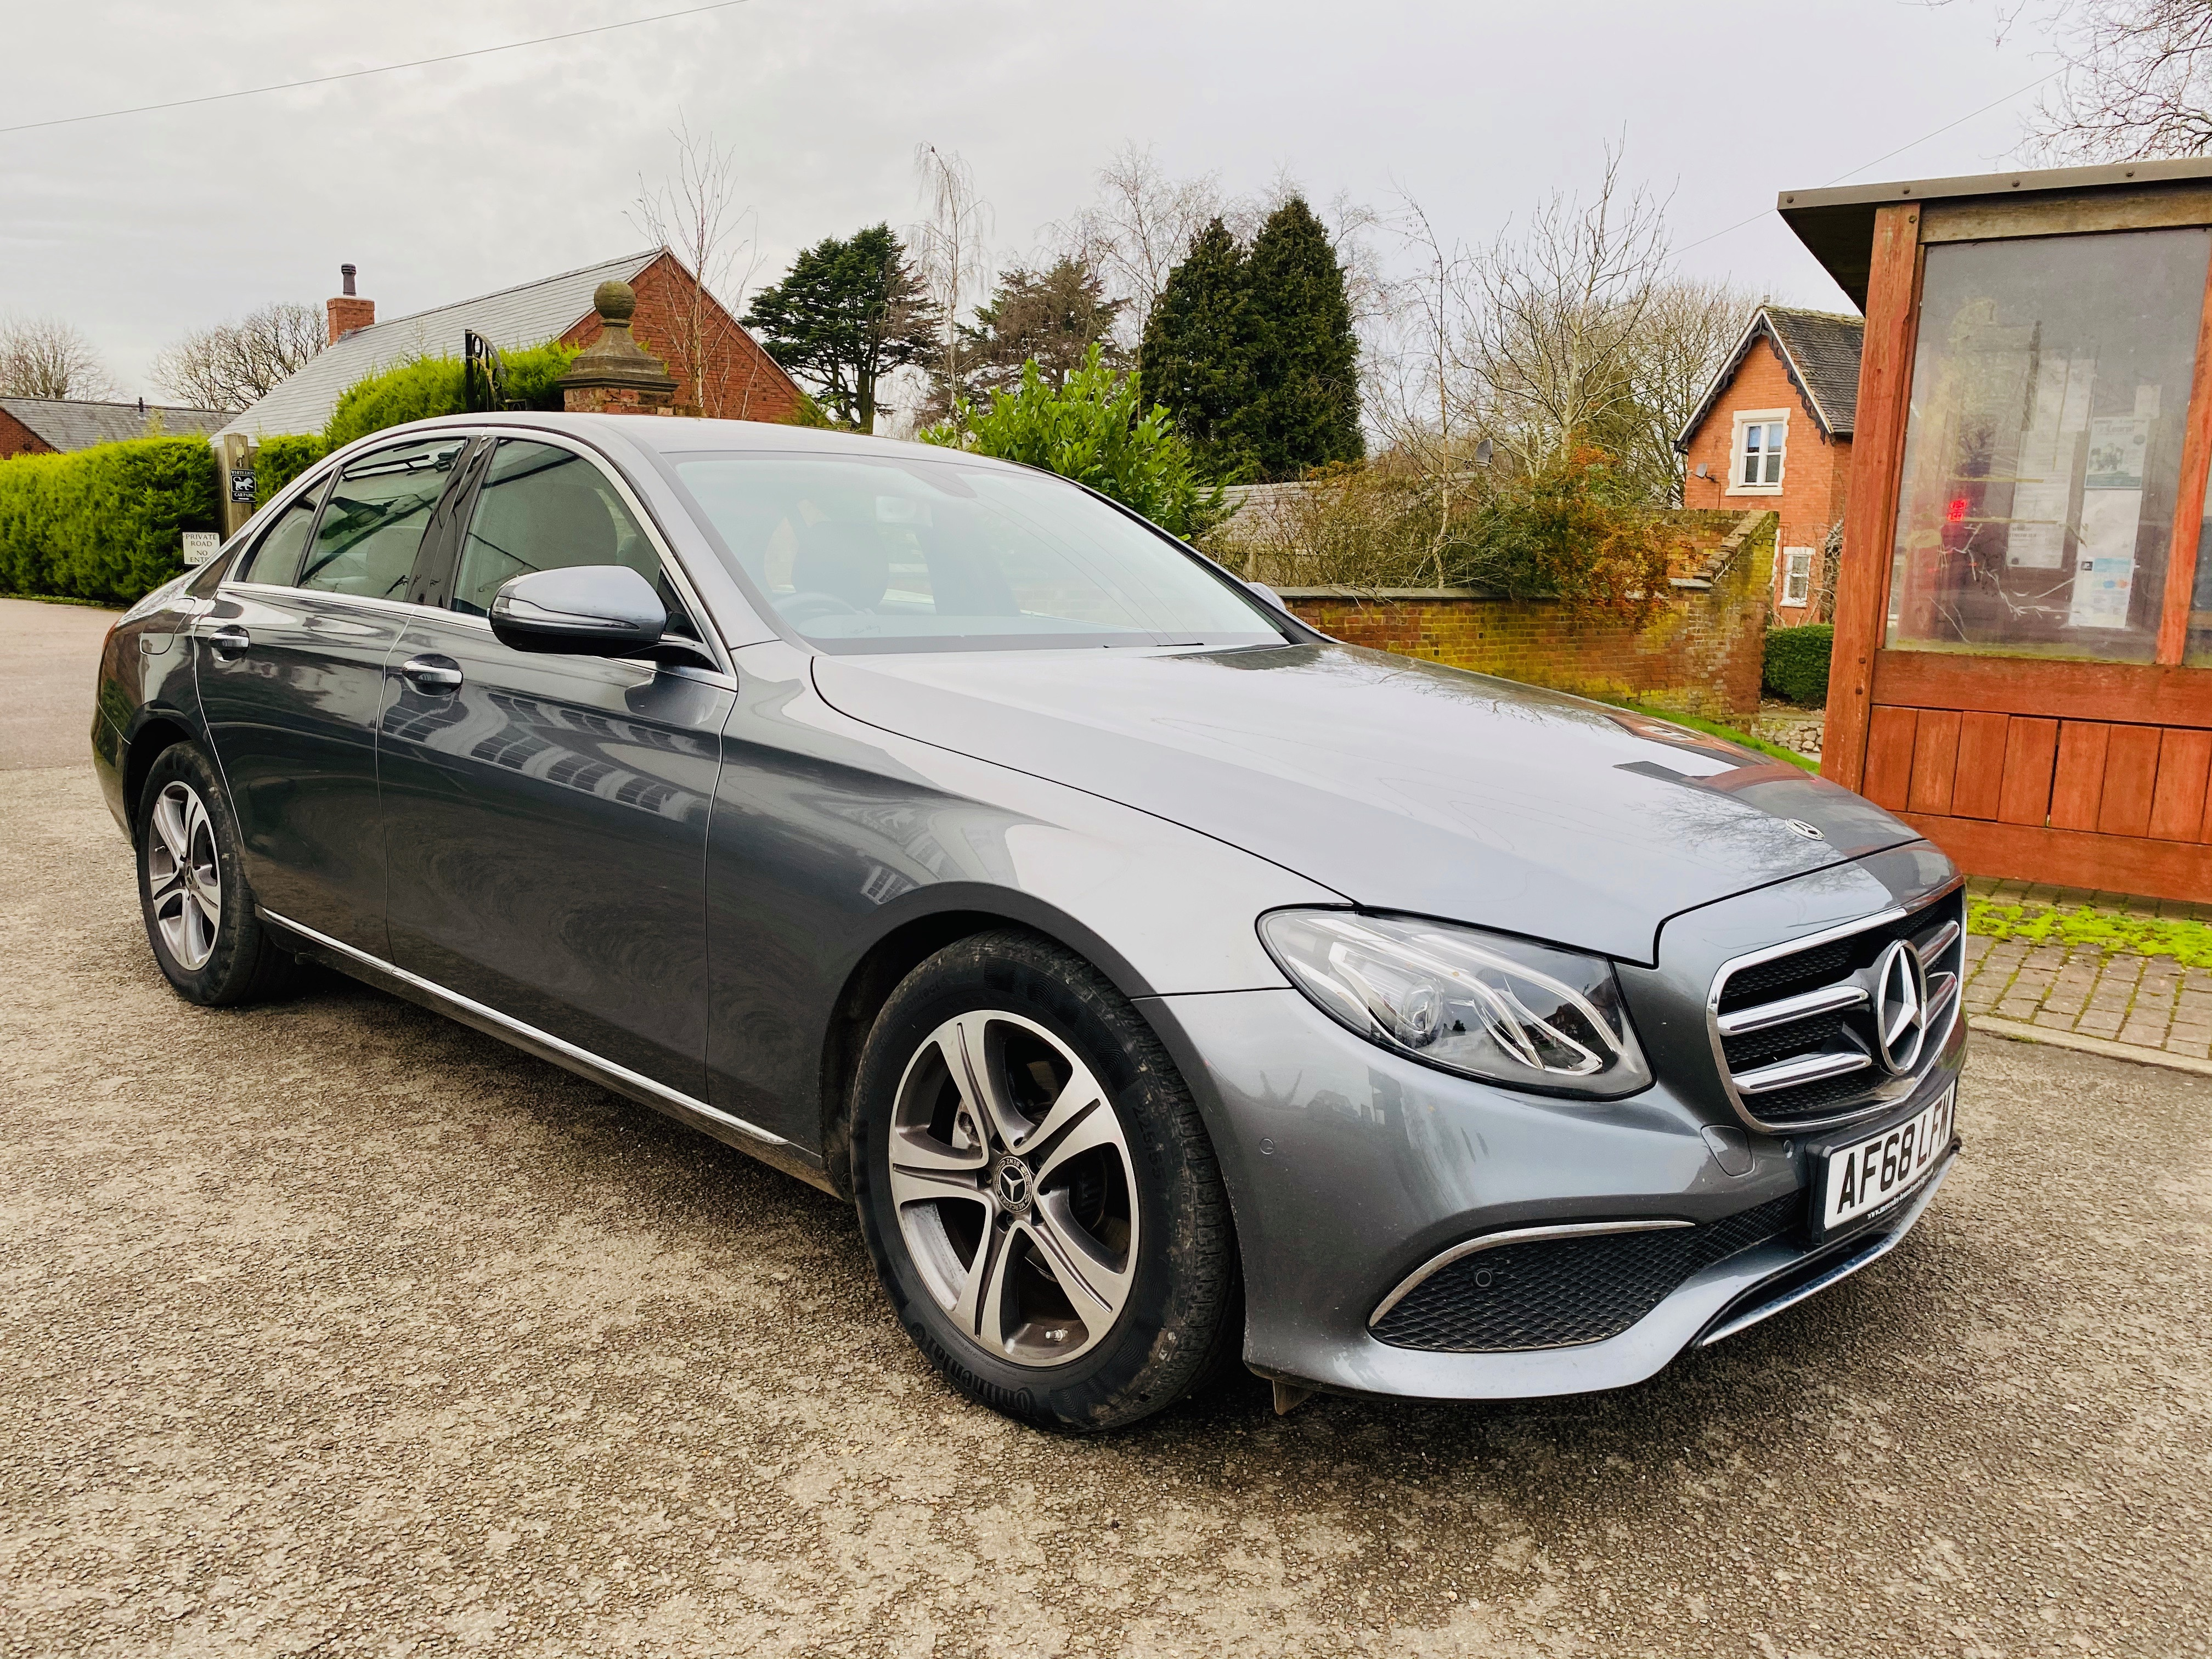 """ON SALE MERCEDES E220d """"SPECIAL EQUIPMENT"""" 9G-TRONIC (2019 MODEL) *GREAT SPEC*SAT NAV - LEATHER - Image 2 of 26"""